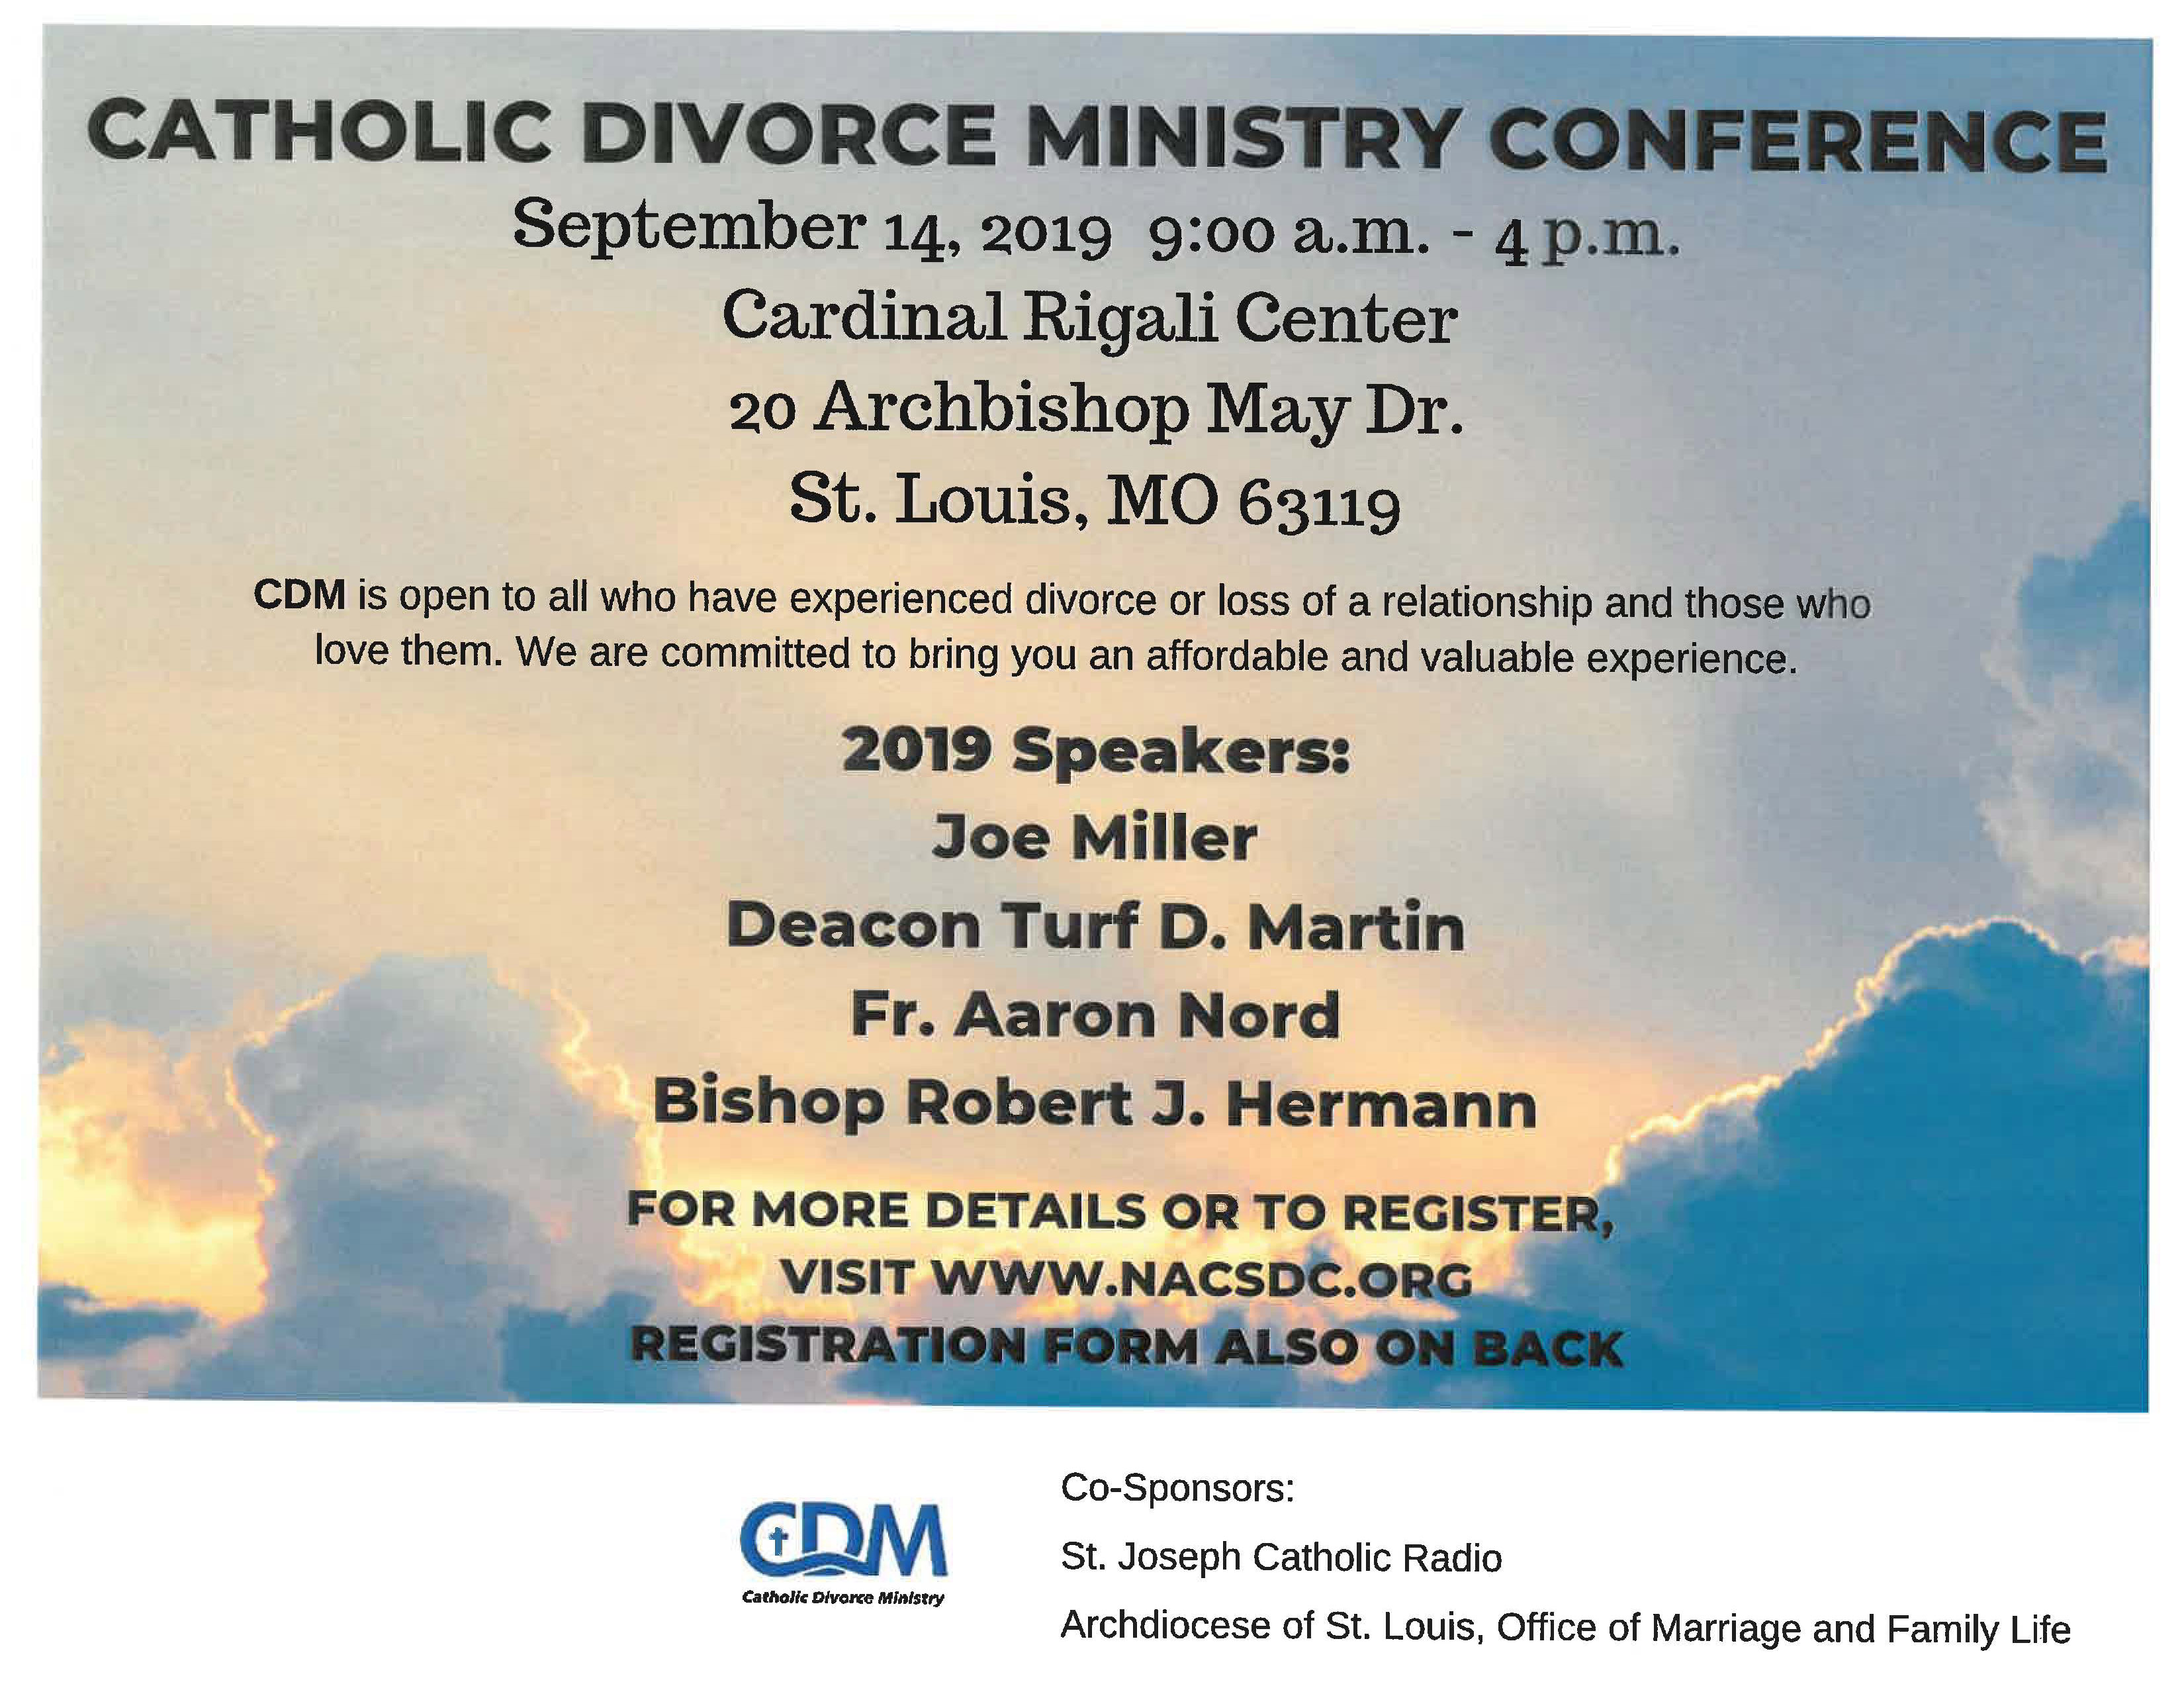 Catholic Divorce Ministry Conference 2019